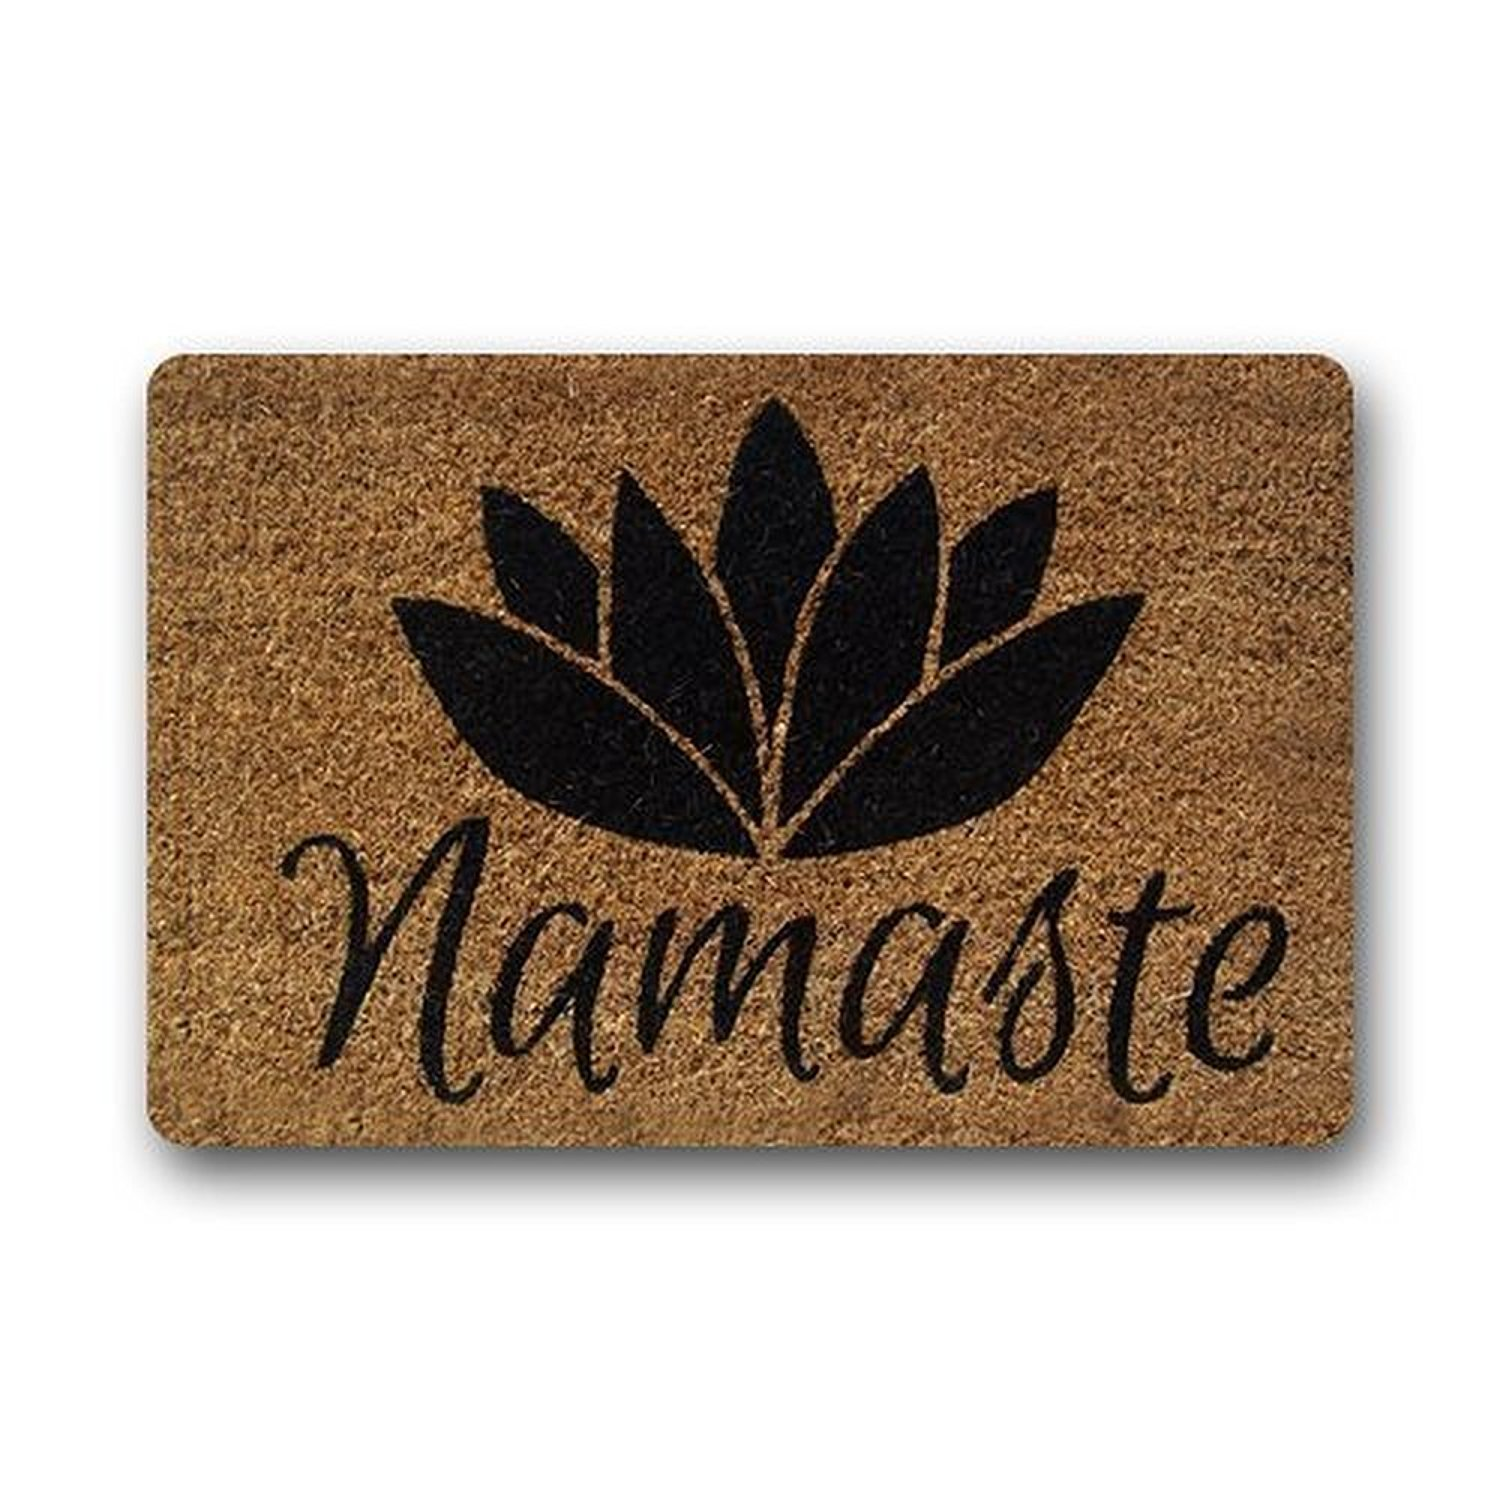 memory home custom personalize namaste coir indoor outdoor doormat rugs floor mat nonslip rectangle